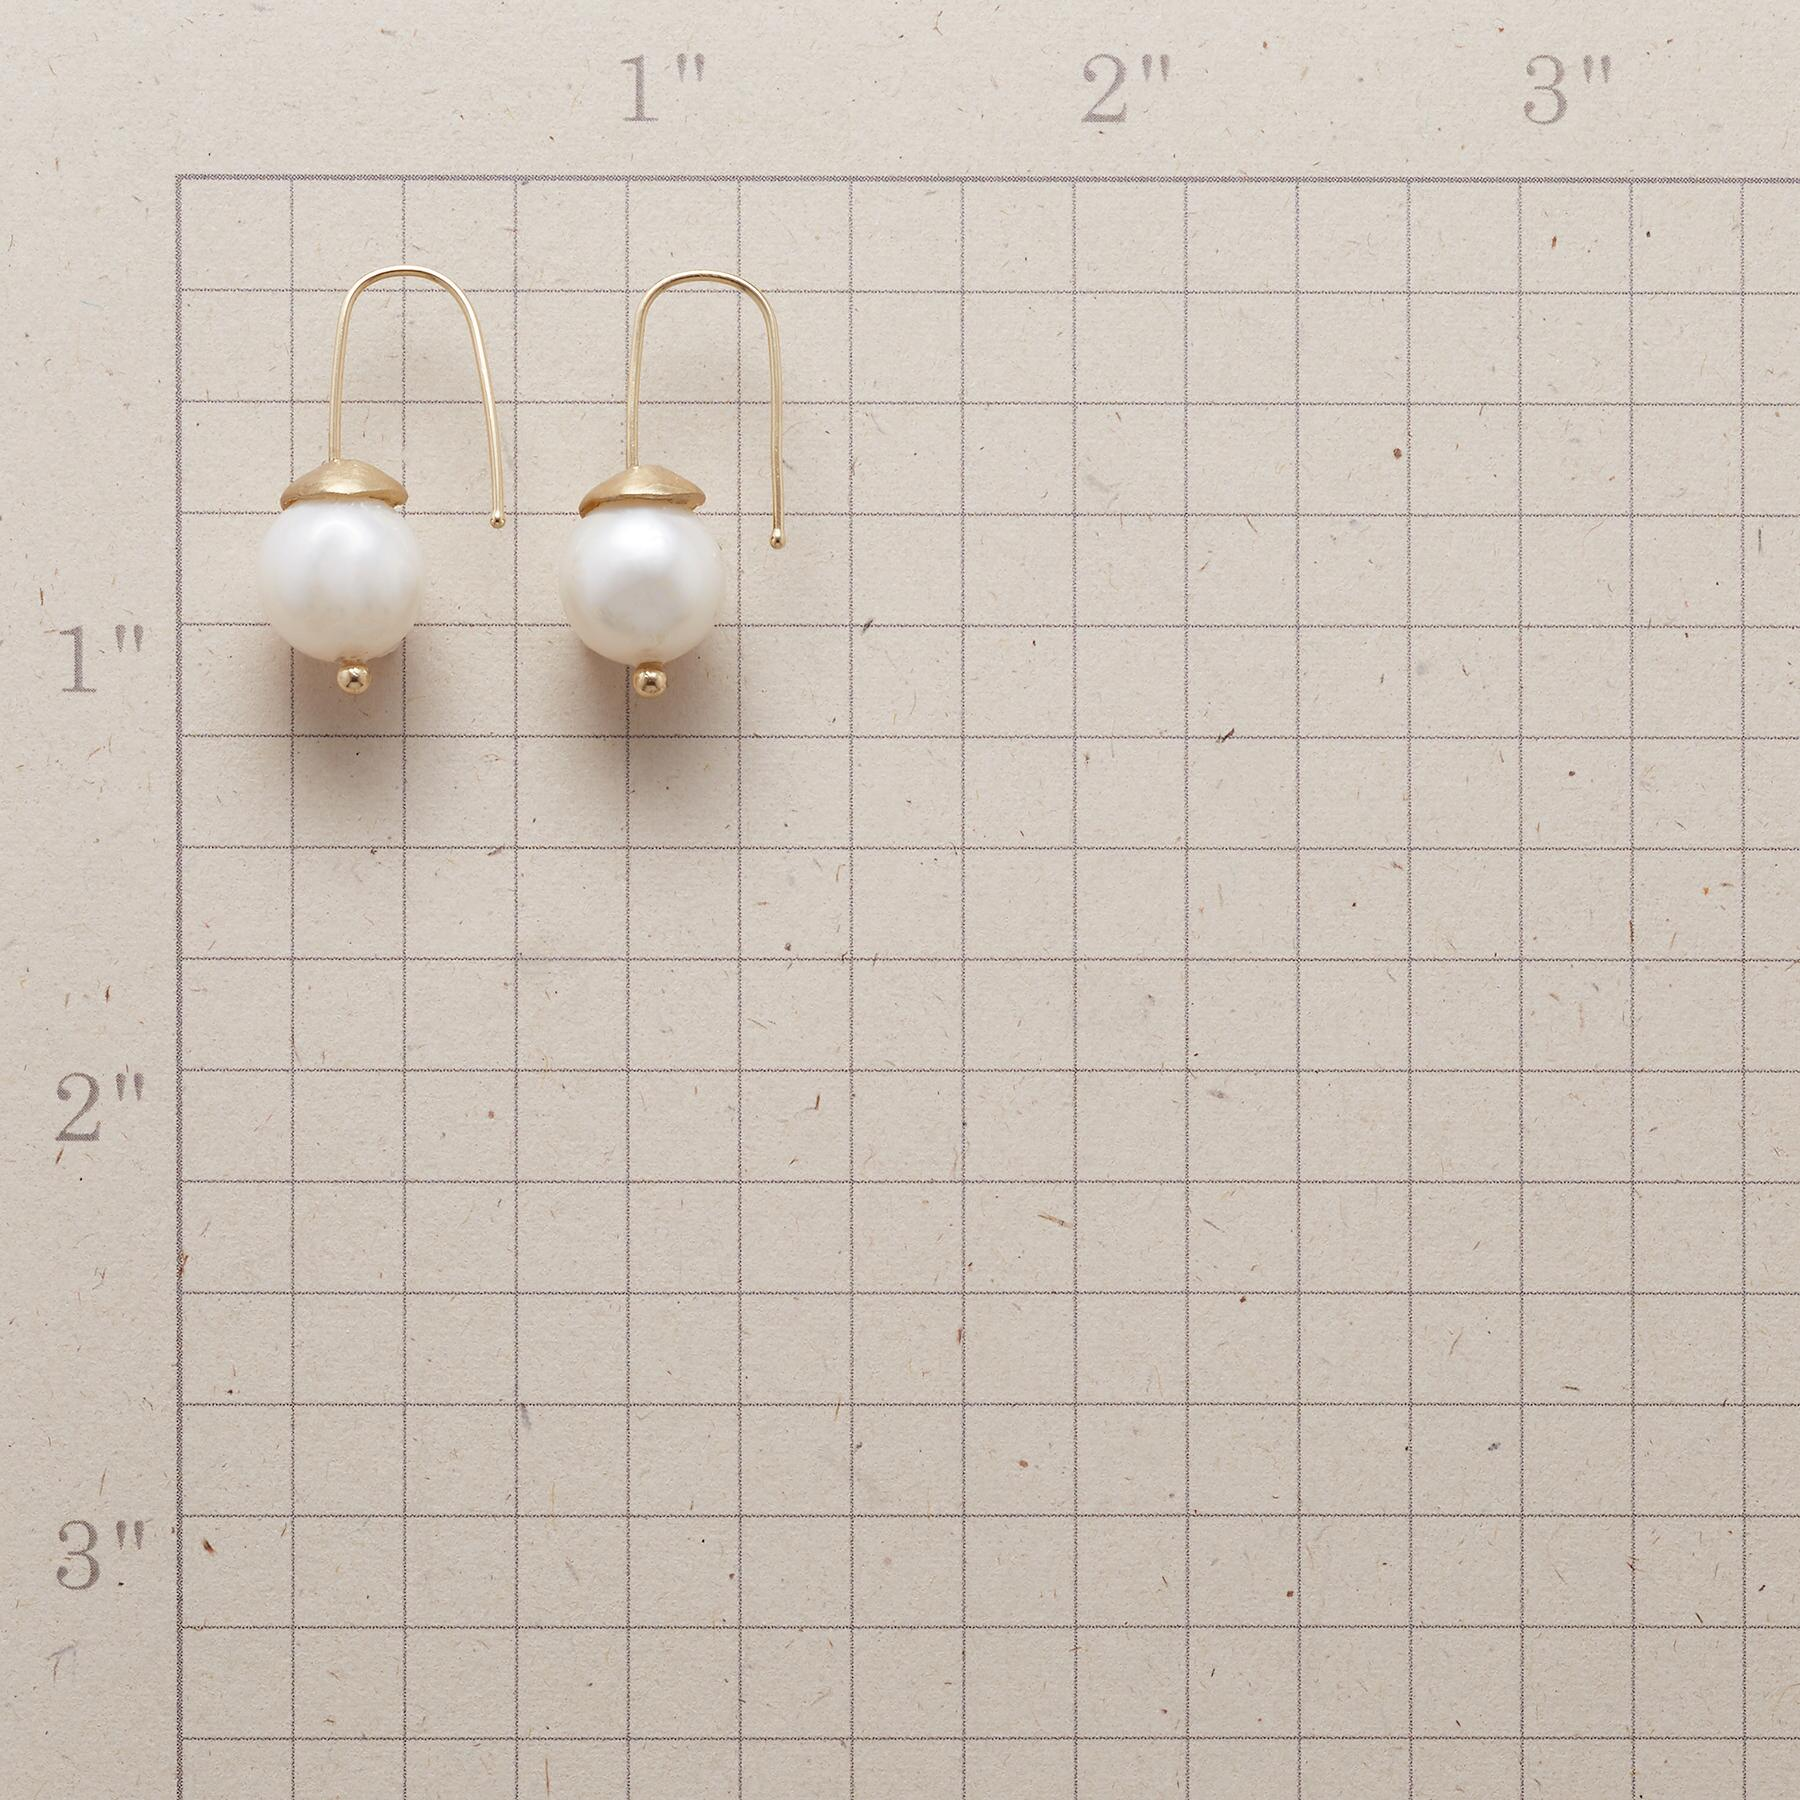 WOODLAND PEARL EARRINGS: View 2